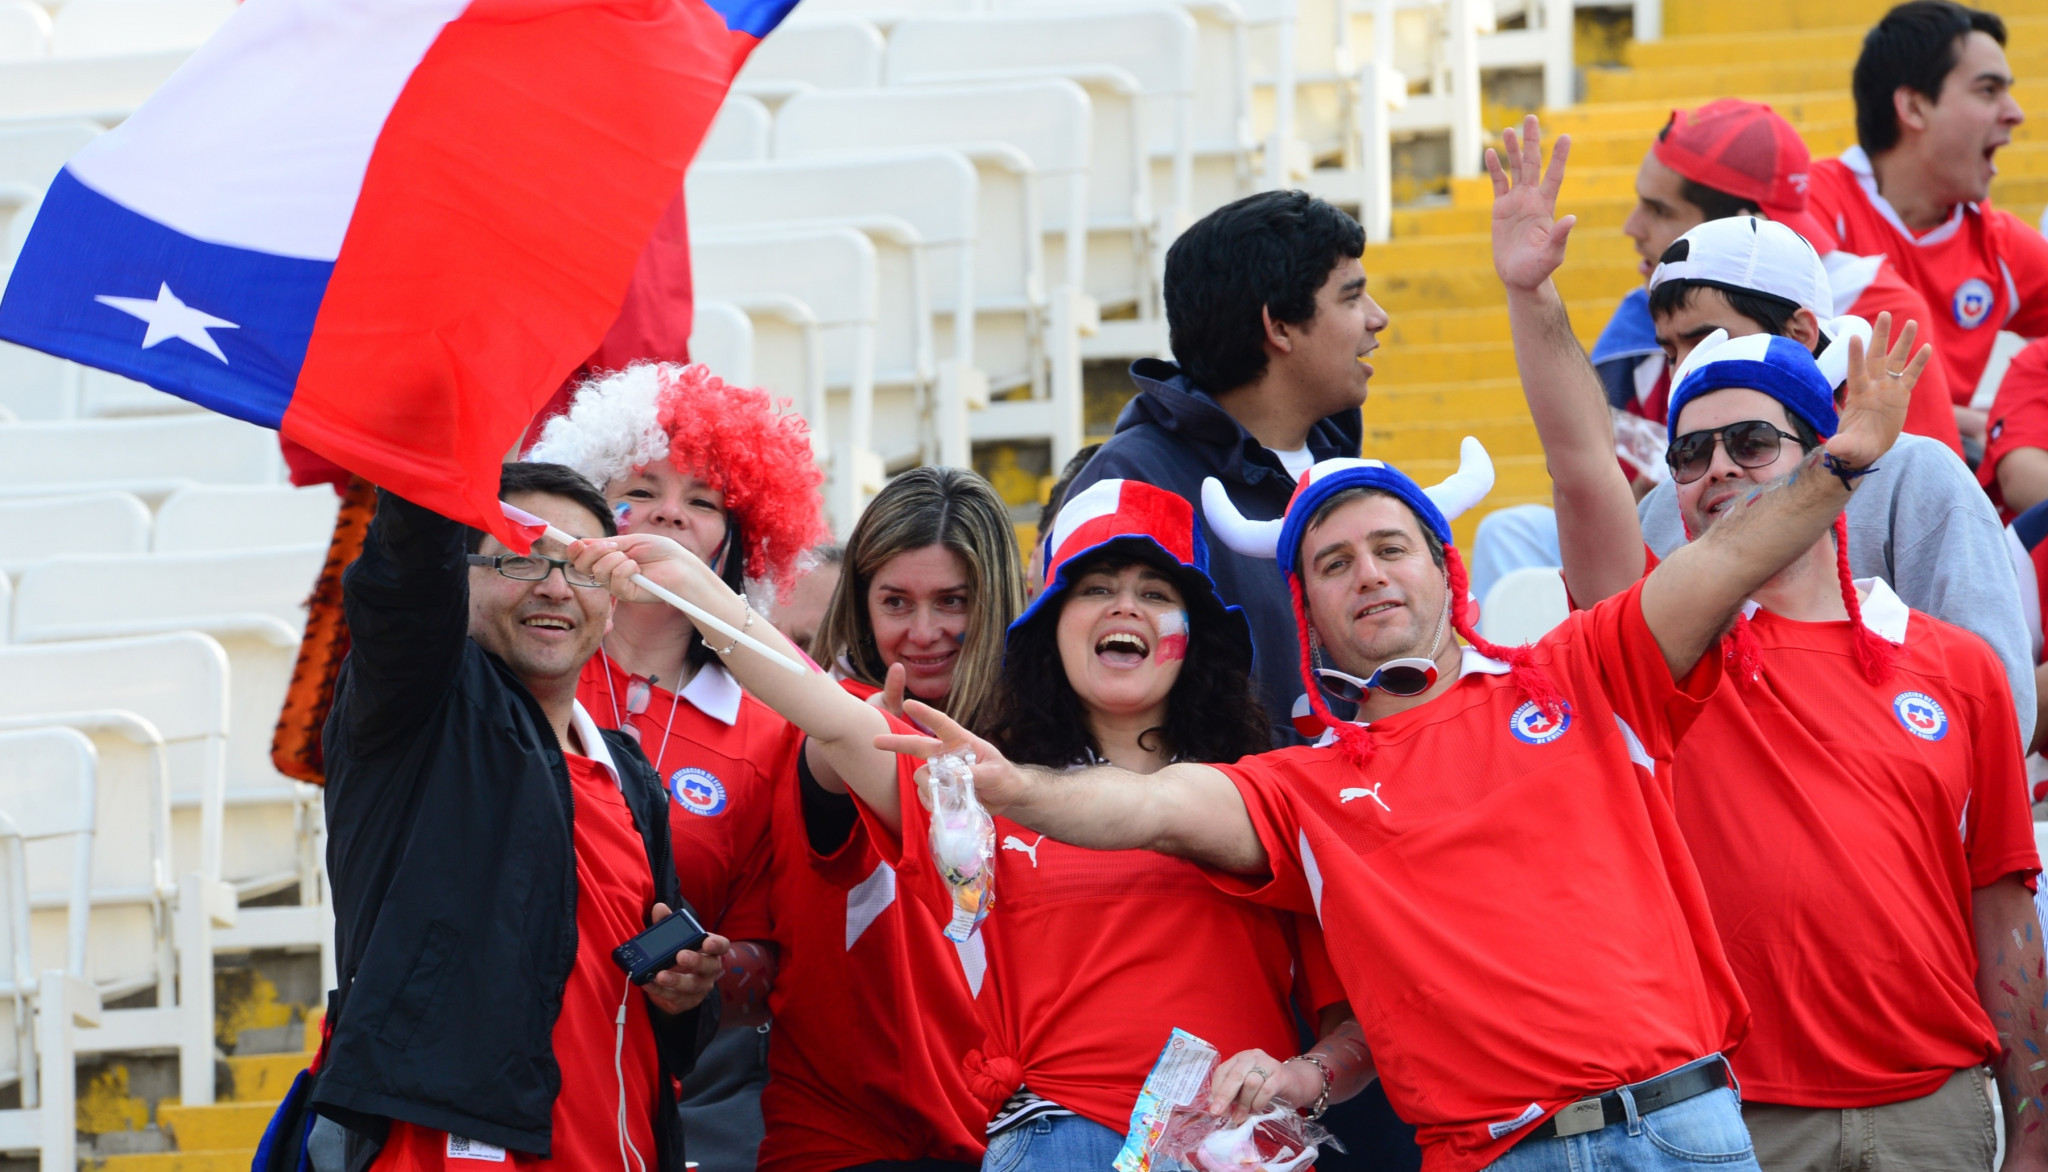 The 2023 Pan American Games are planned as the biggest sporting event in Chile's history ©Getty Images